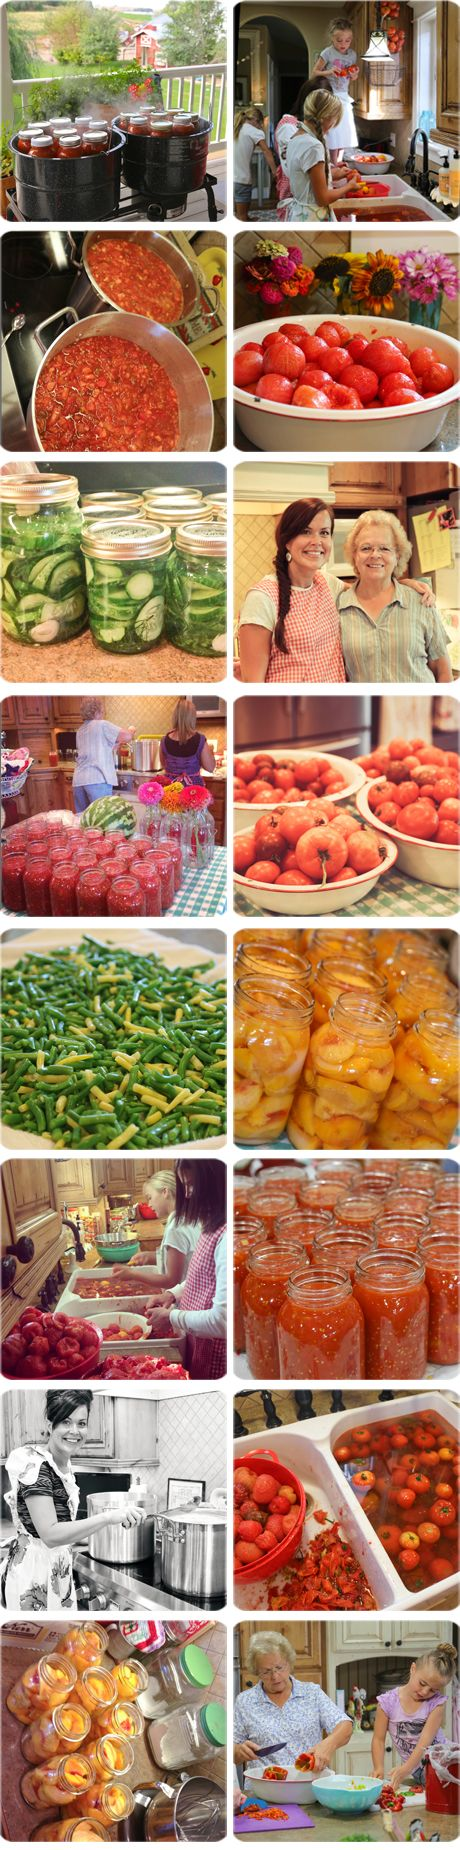 The BEST website for gardening/canning!  My Crazy Life As A Farmer's Wife is one of my all time favorite blog reads!